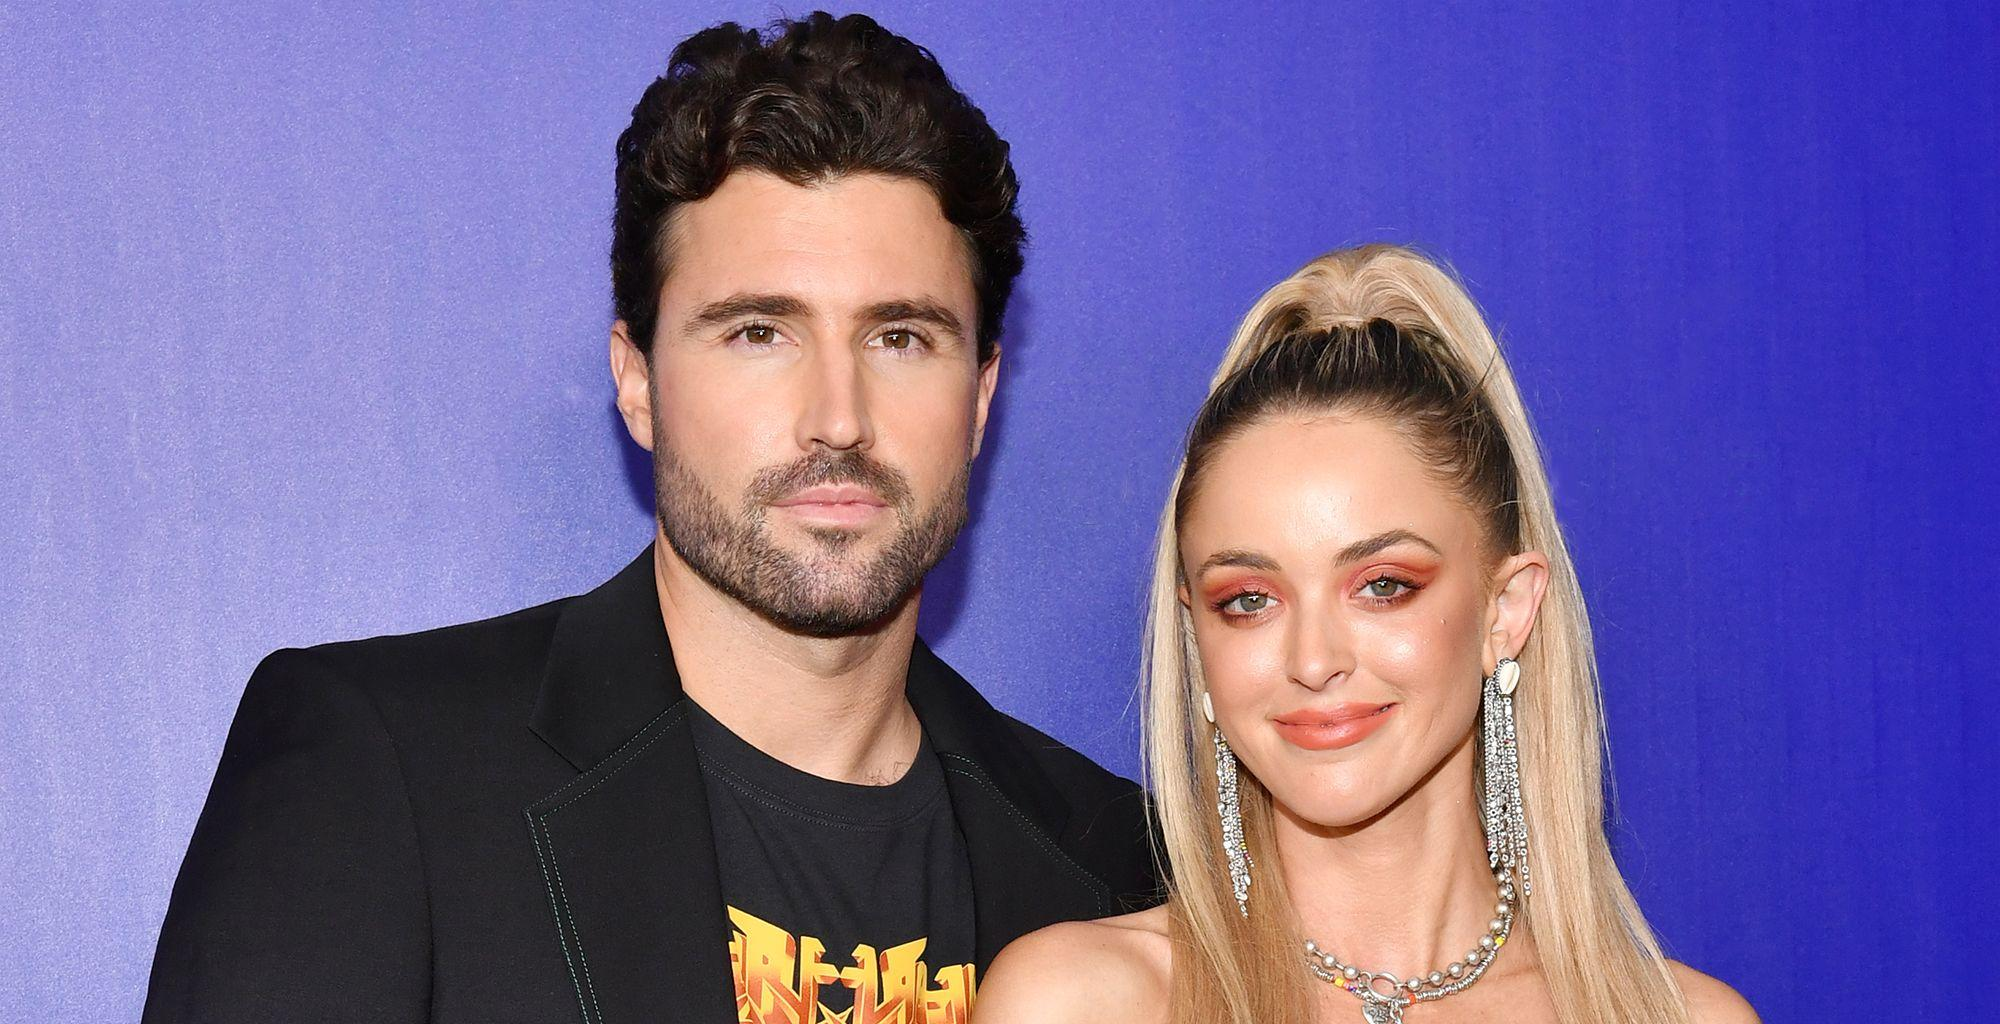 Brody Jenner Has The Time Of His Life In Las Vegas As A Single Man Following Split From Kaitlynn Carter